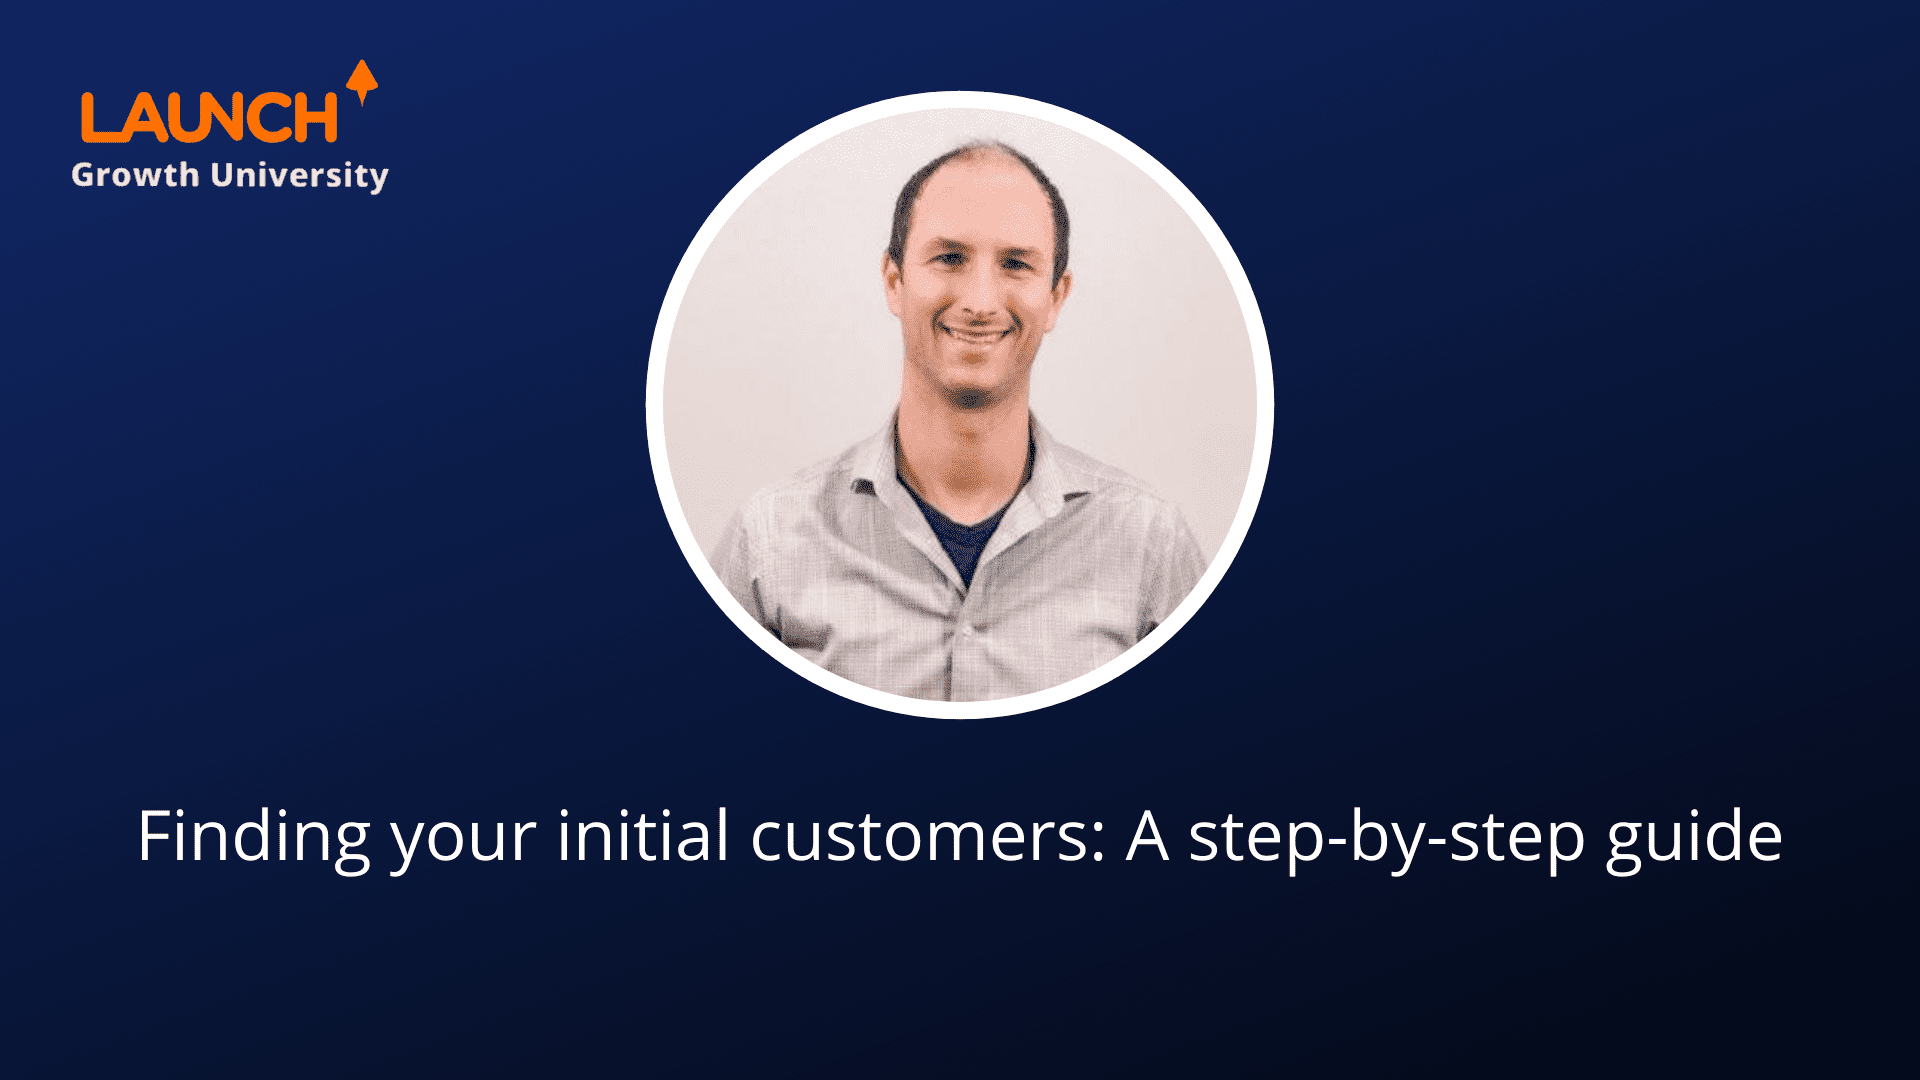 Finding your initial customers: A step-by-step guide